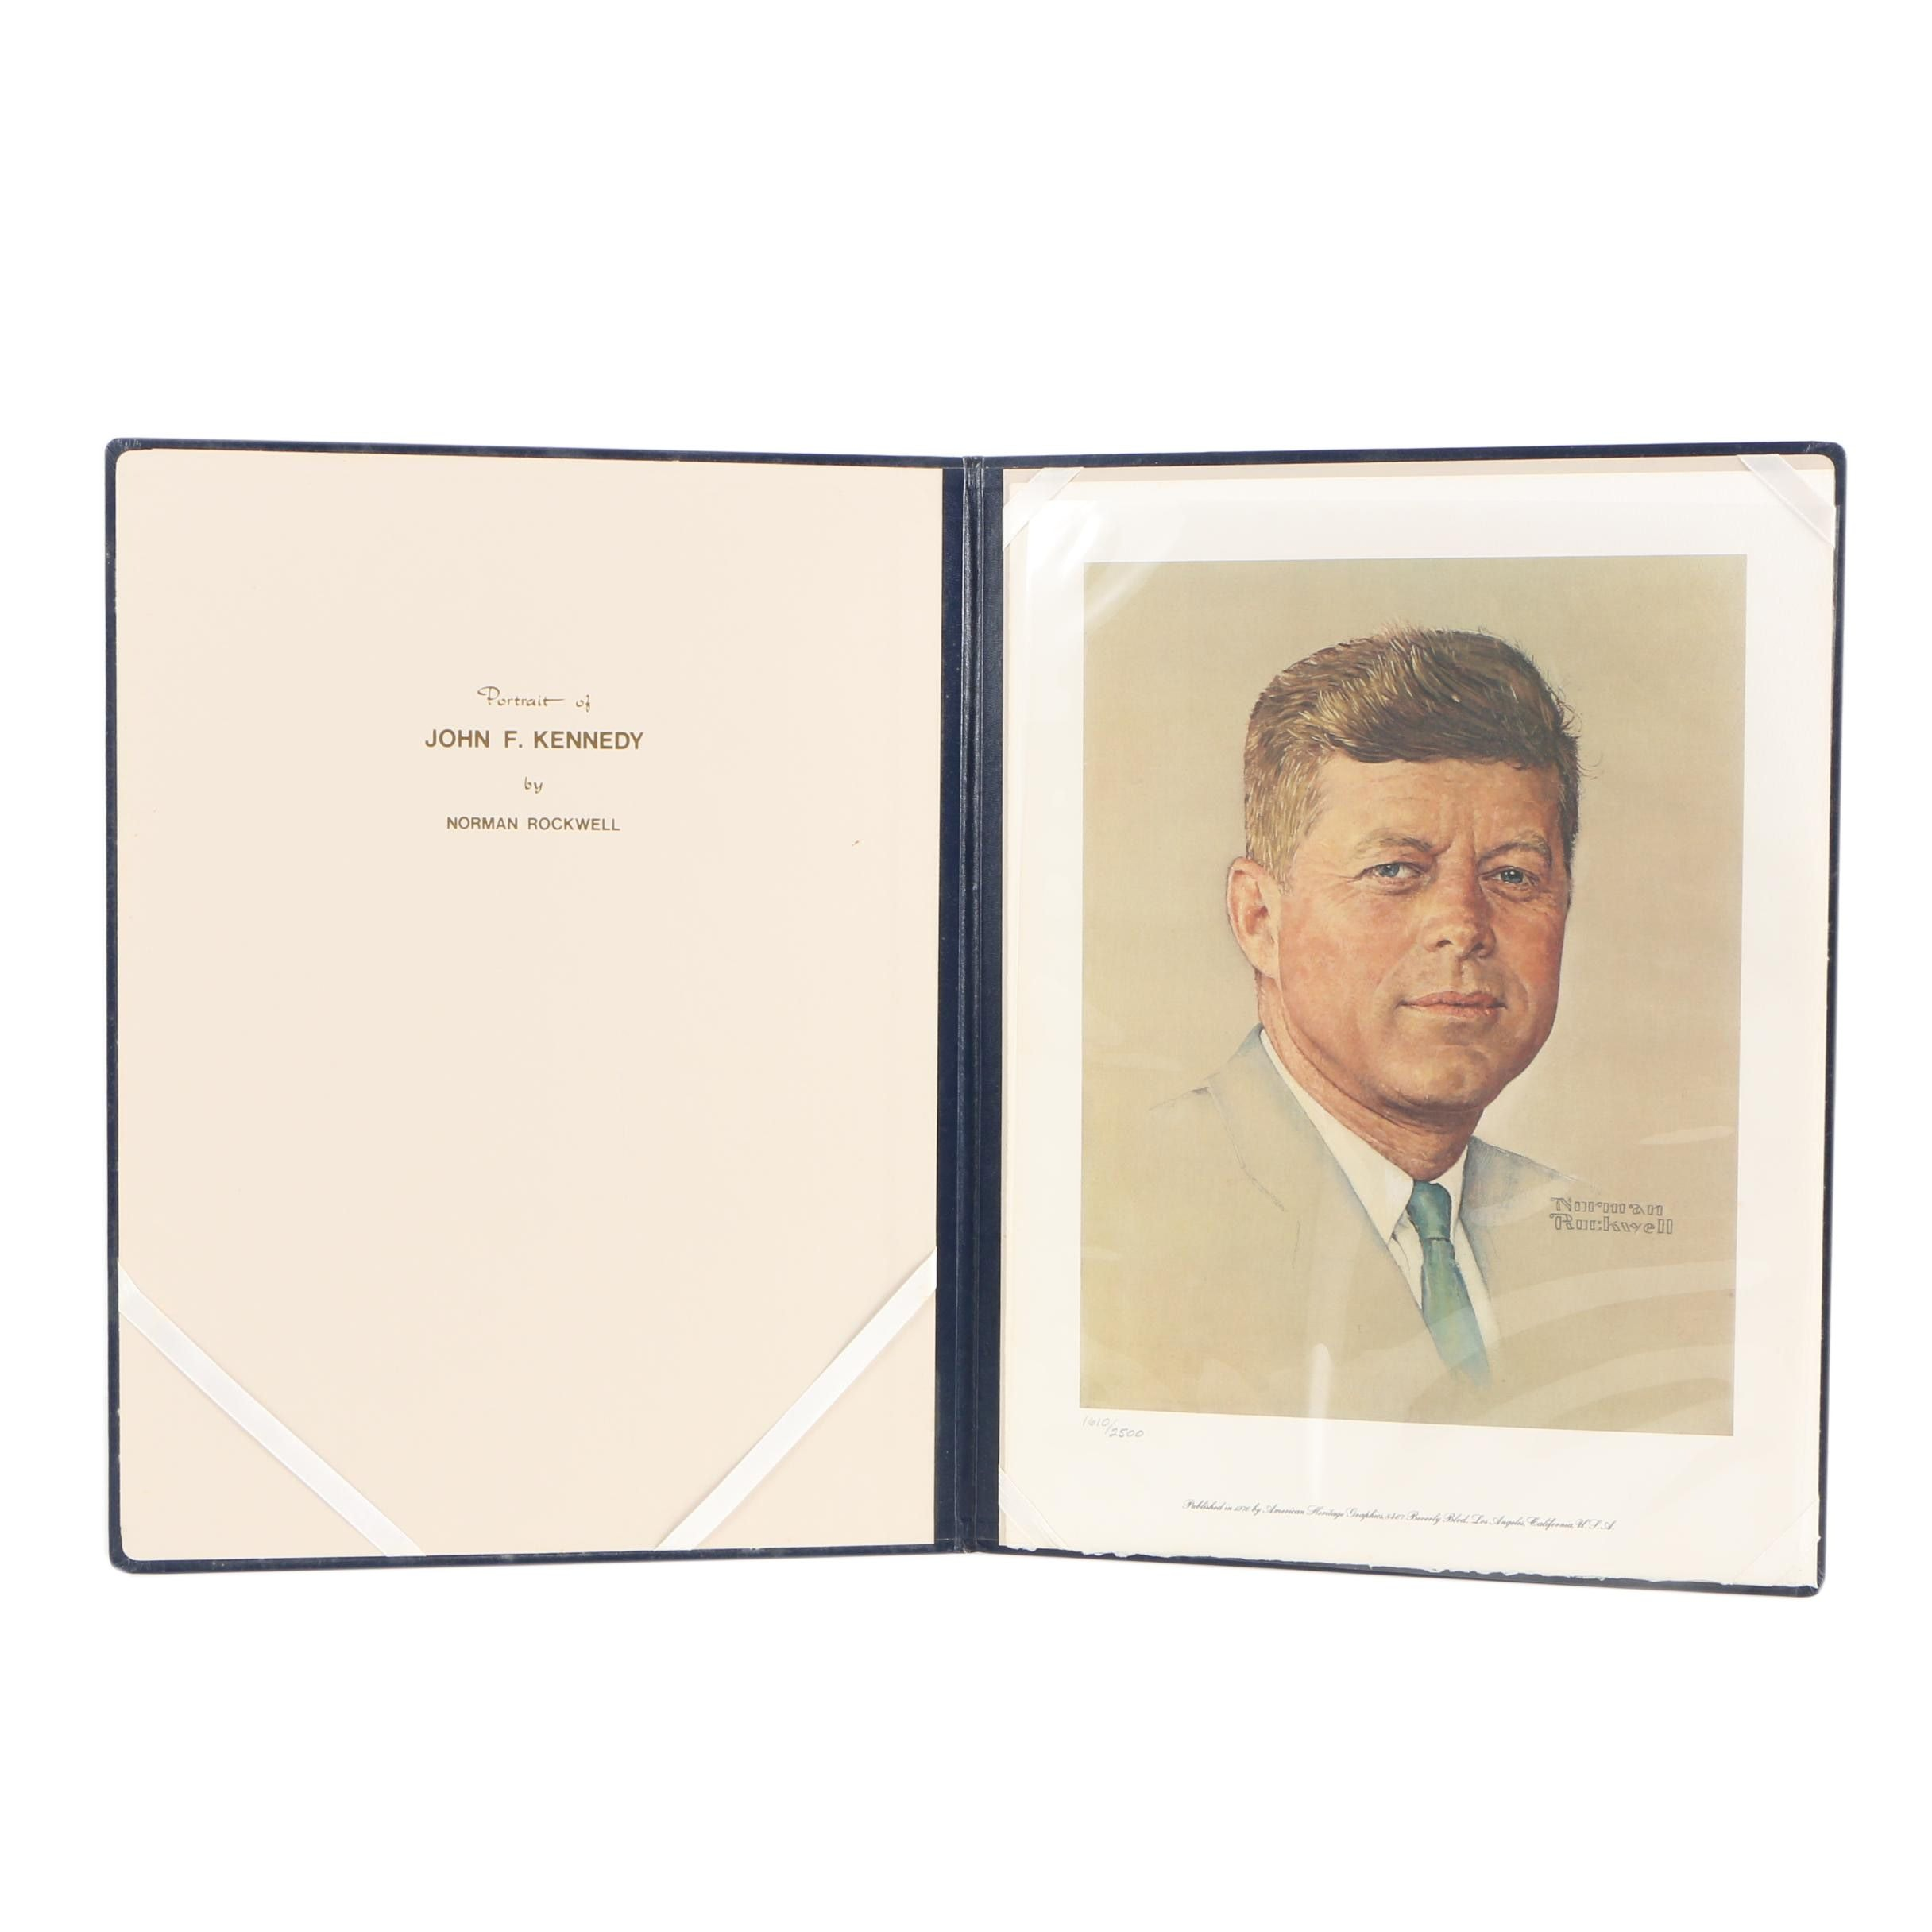 "Limited Edition Offset Lithograph After Norman Rockwell's ""John F. Kennedy"""